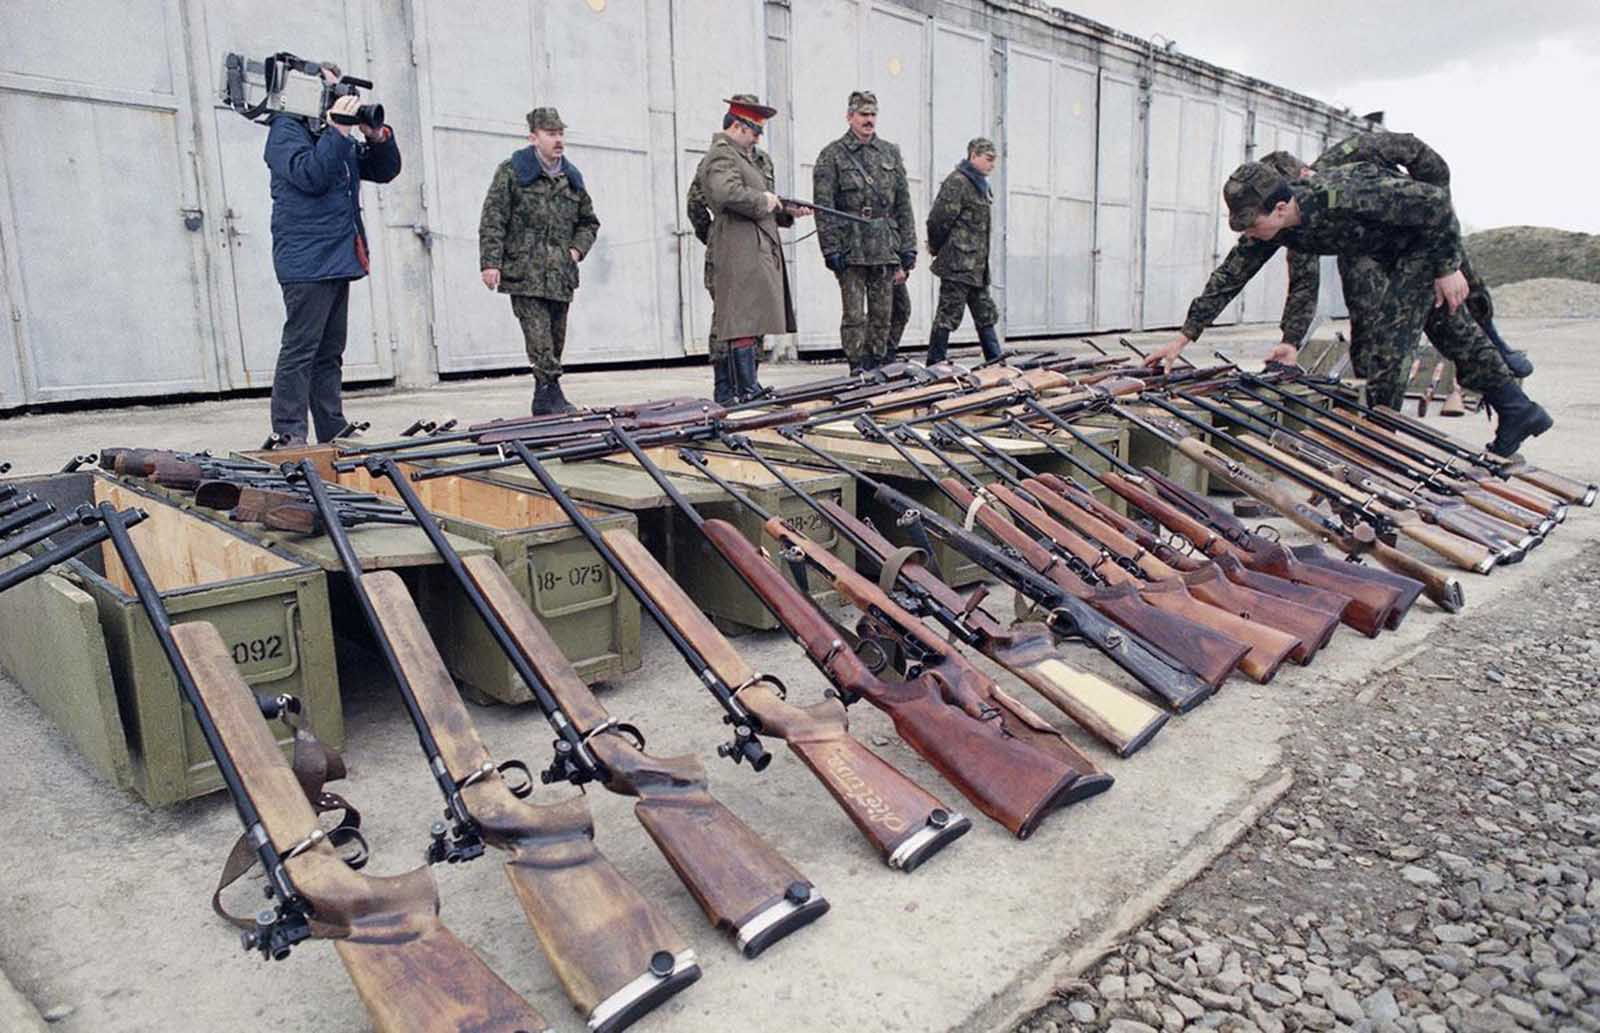 Two Soviet paratroopers inspect weapons confiscated from a local militia organization in Kaunas, Lithuania on Sunday, March 26, 1990. Soviet President Gorbachev ordered all Lithuanians to surrender their firearms to Soviet authorities.